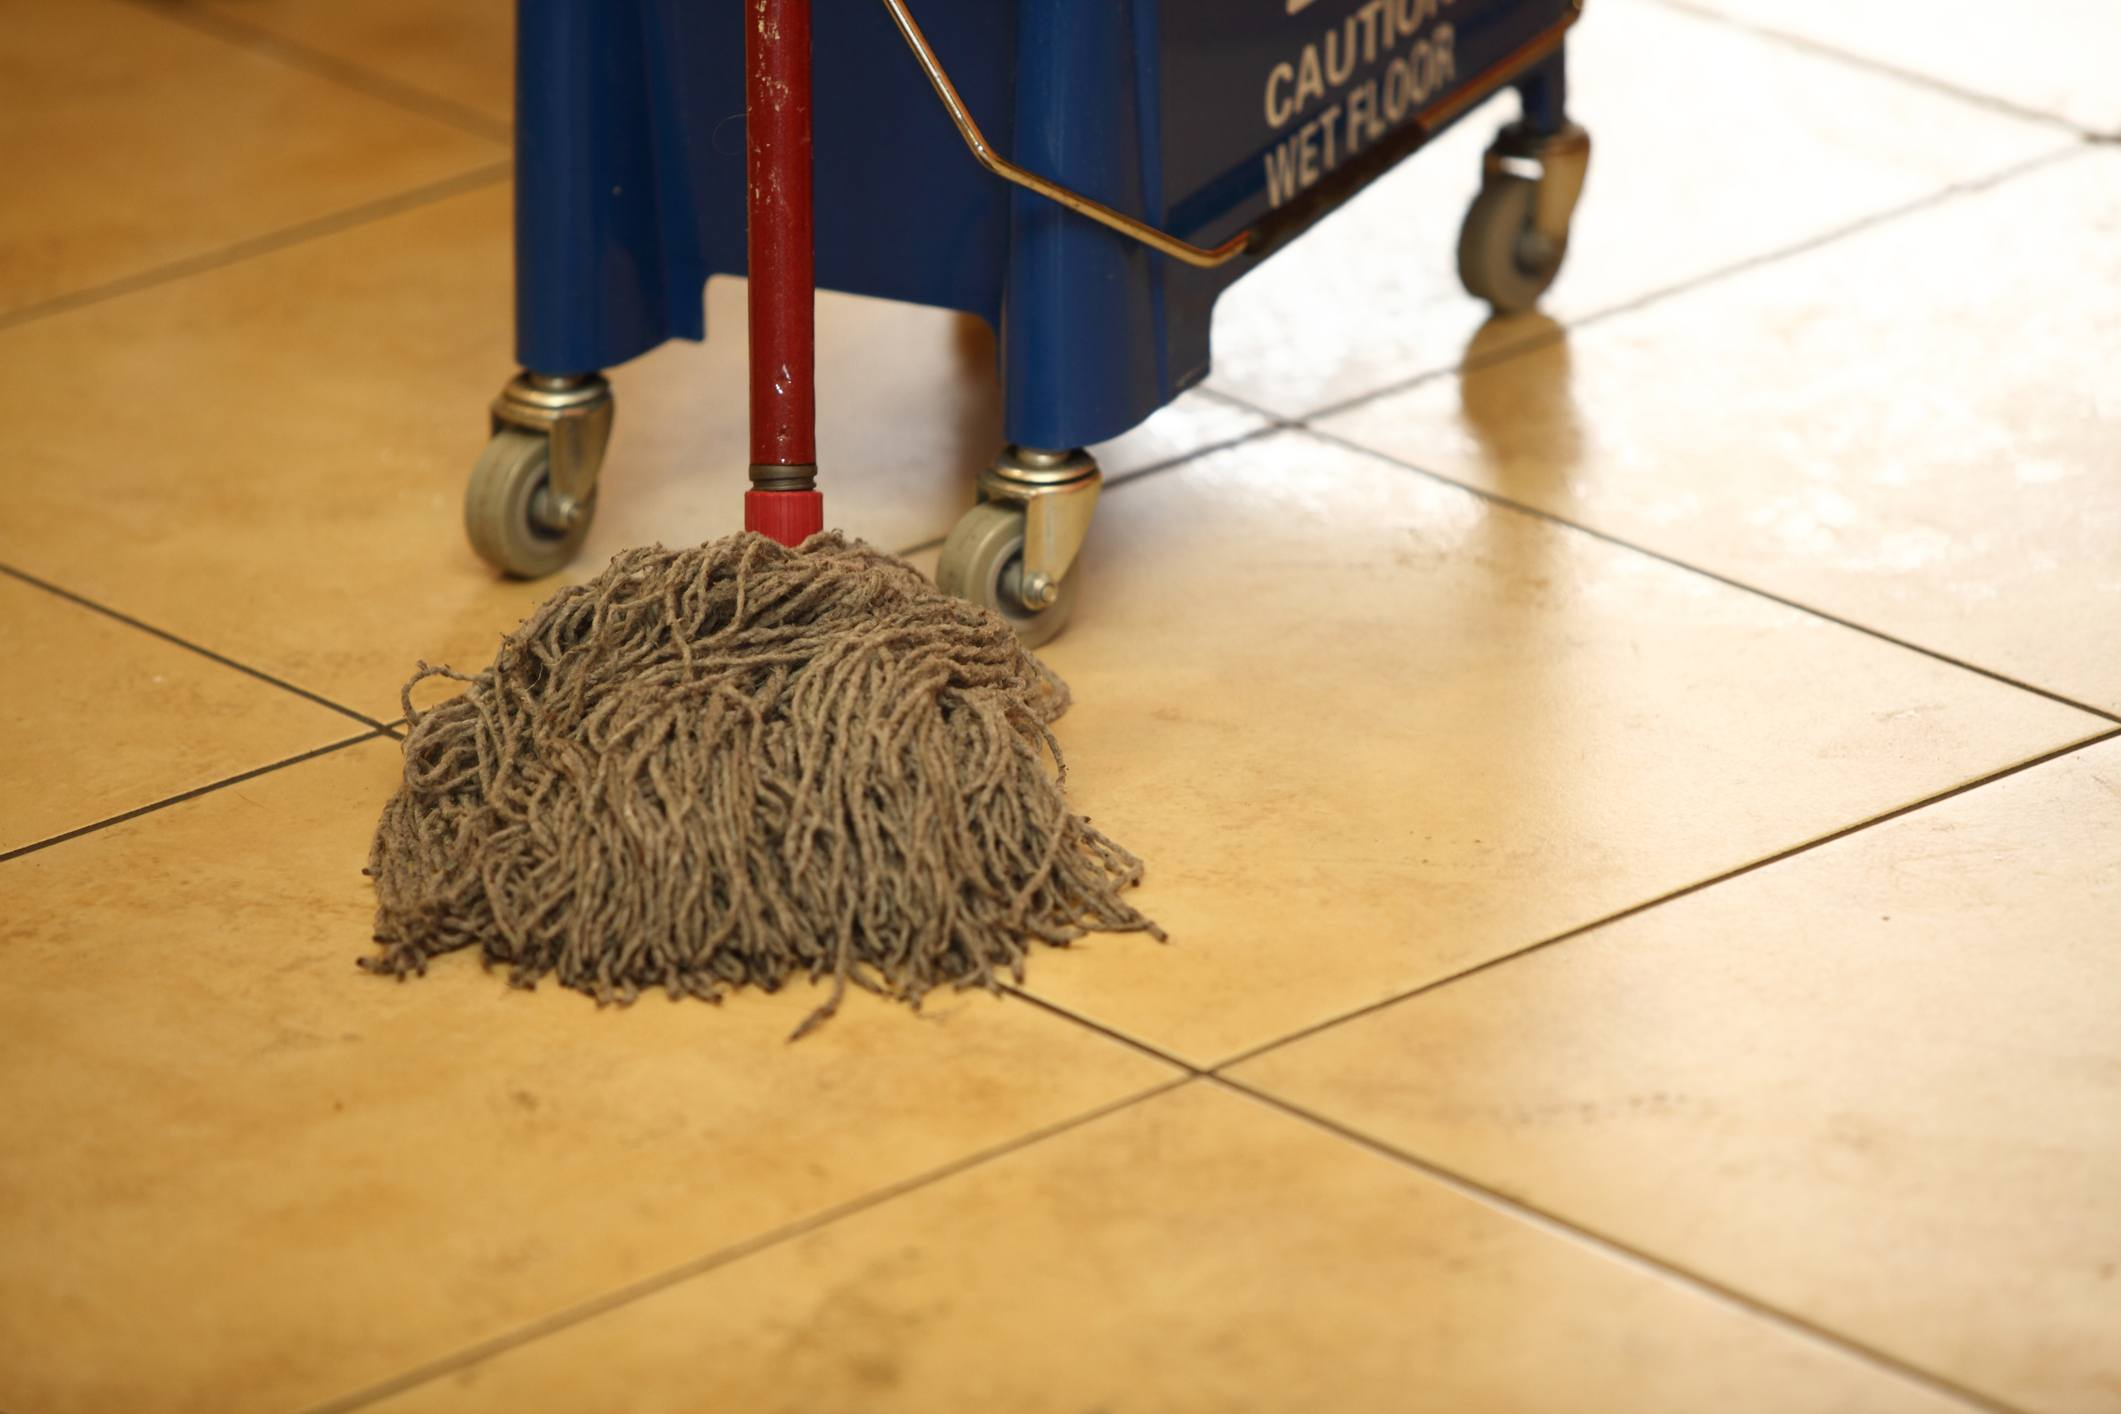 cleaning the floor with a old mop, mopping